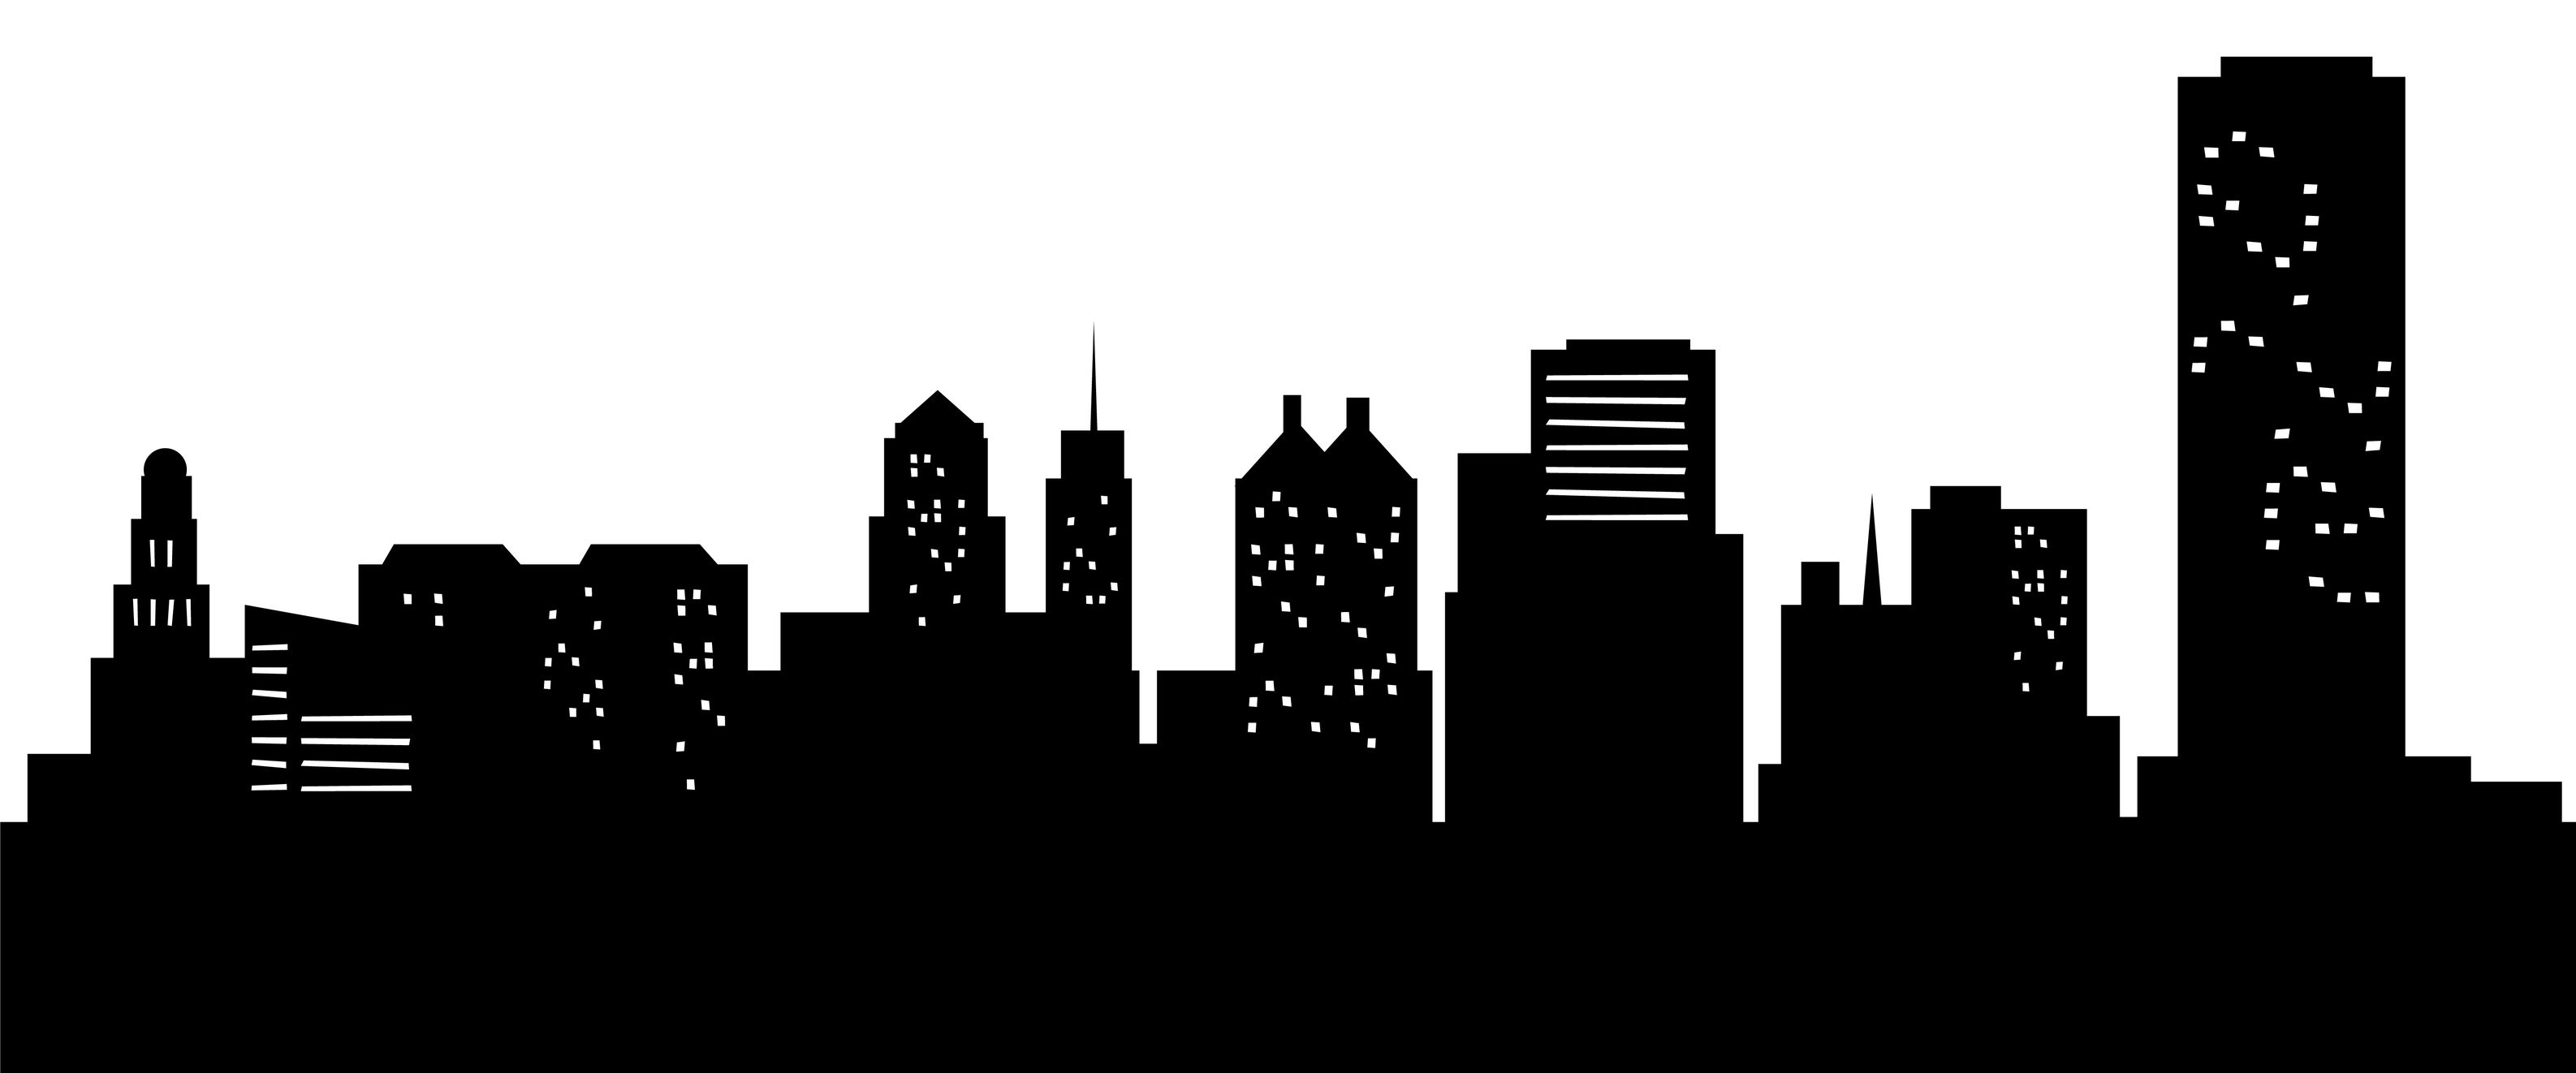 Skyline clipart #1, Download drawings